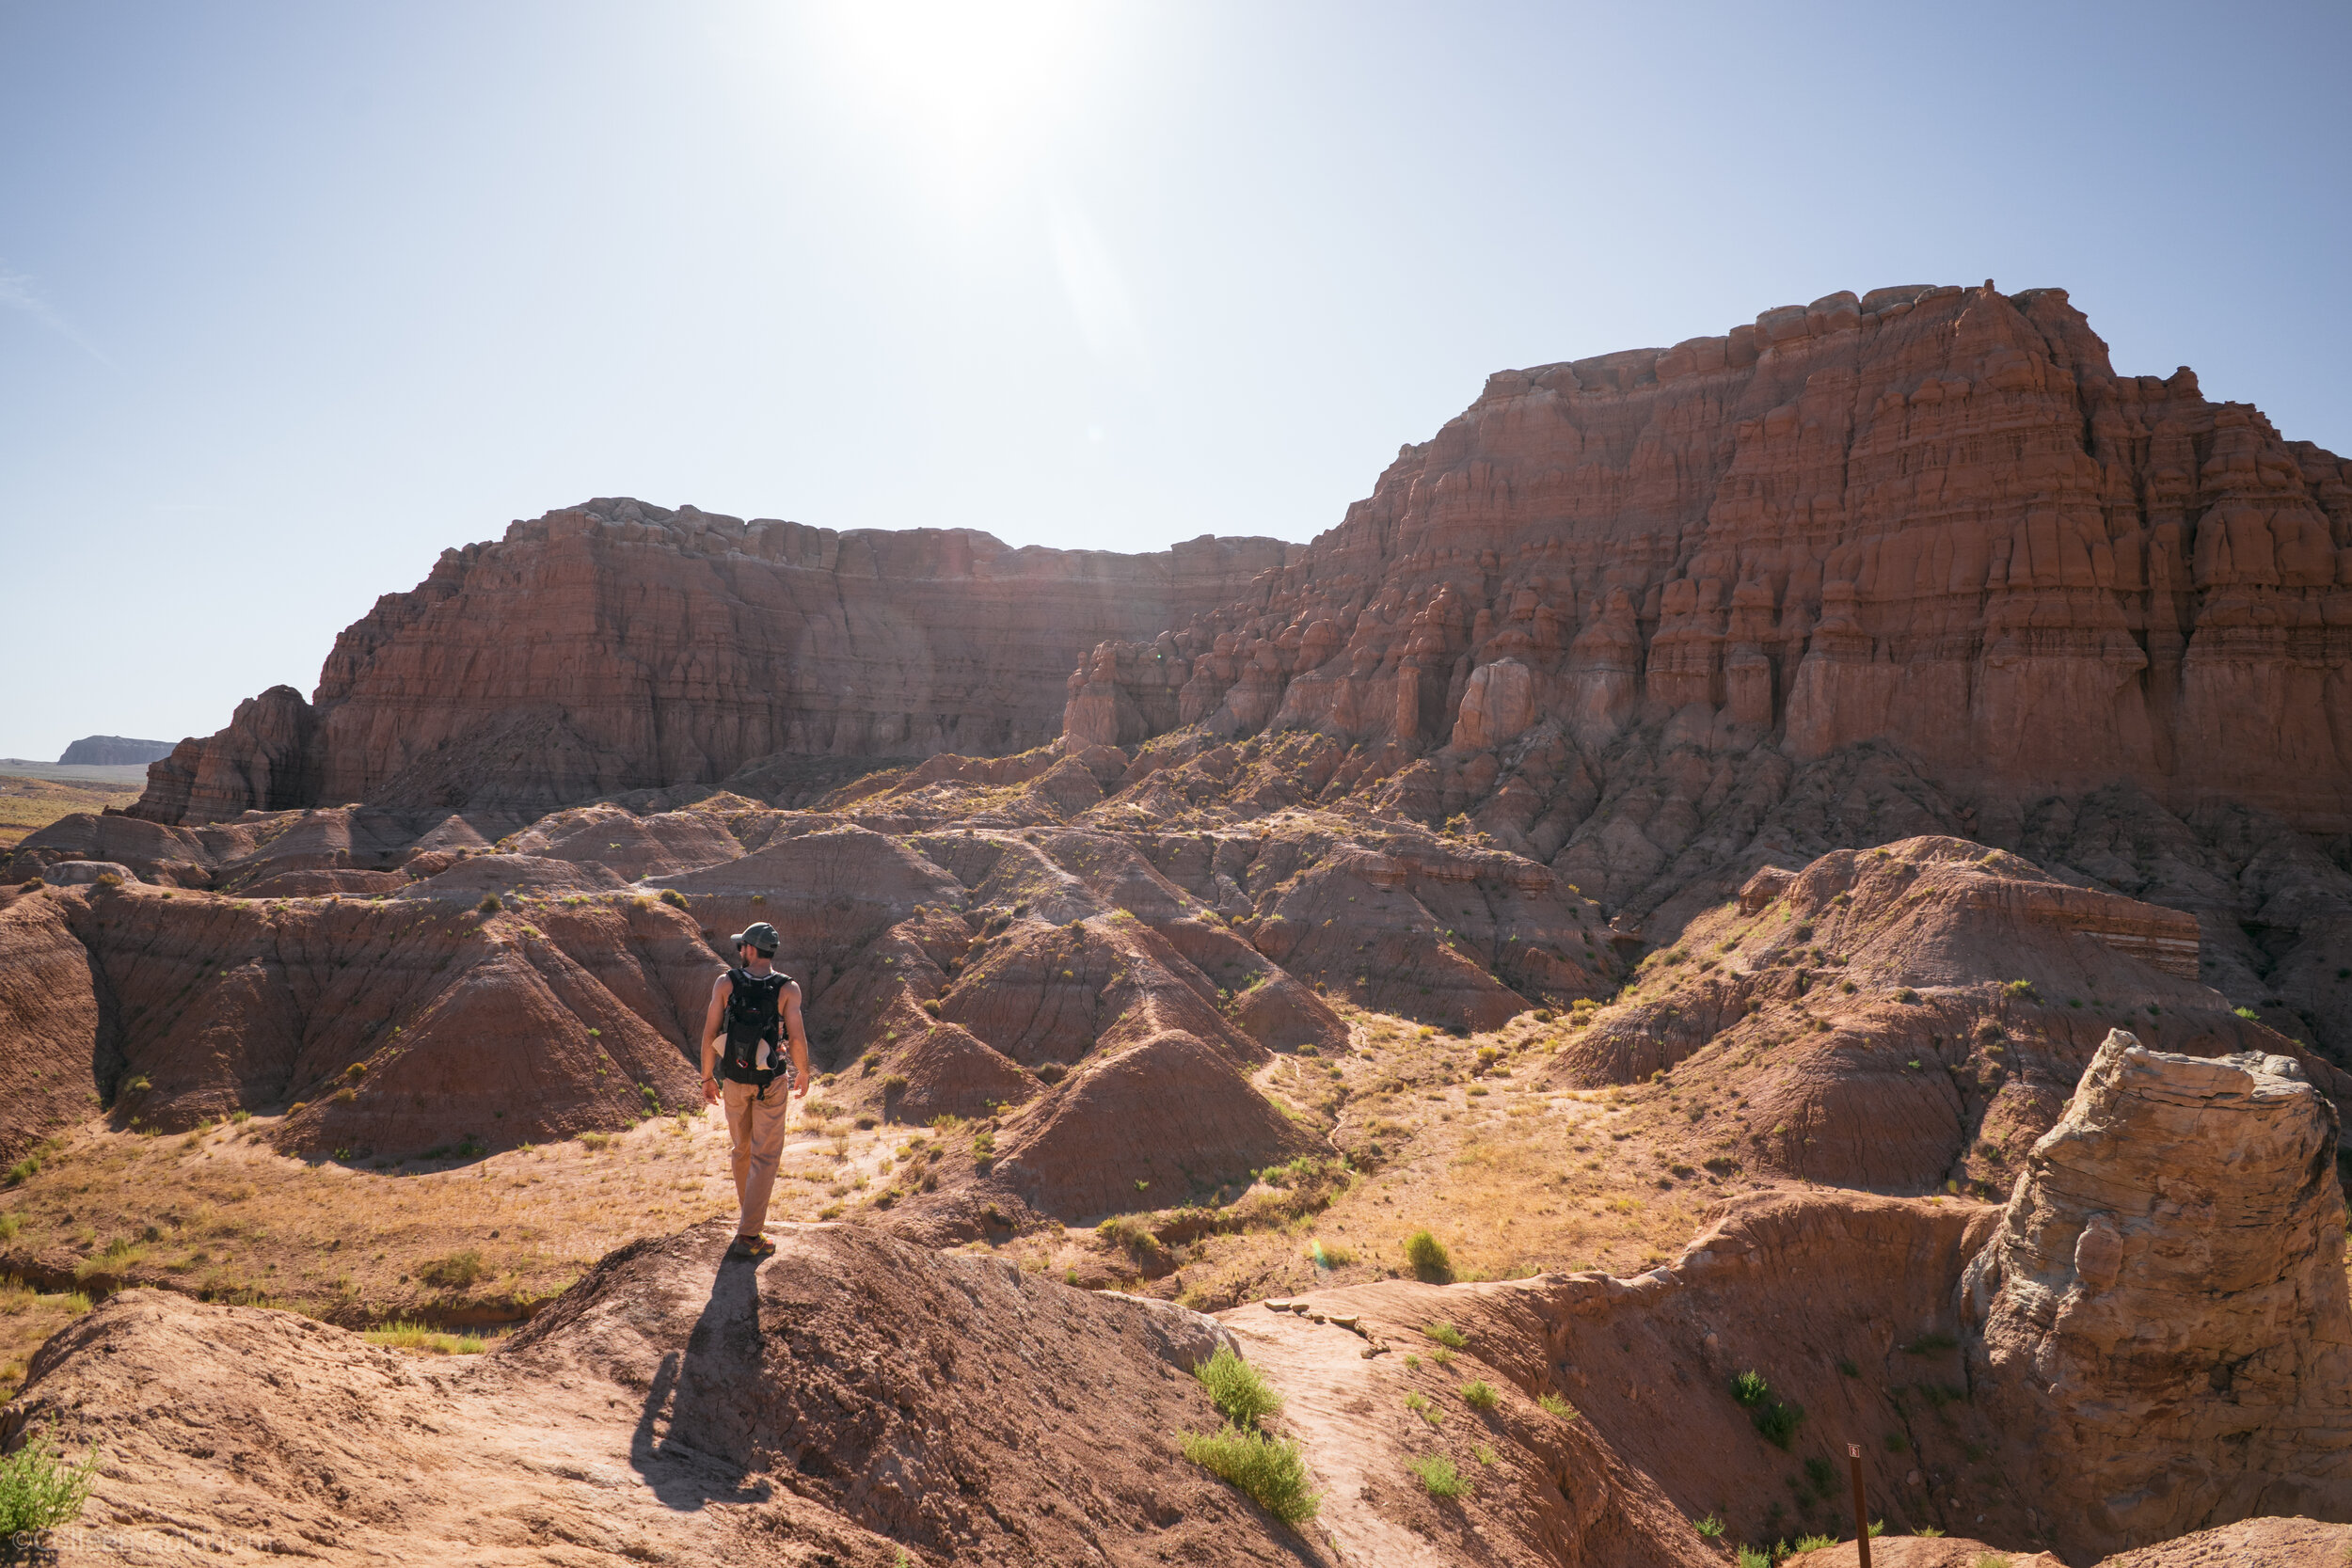 Our next stop was halfway between Capitol Reef and Moab at a place called Goblin Valley State Park